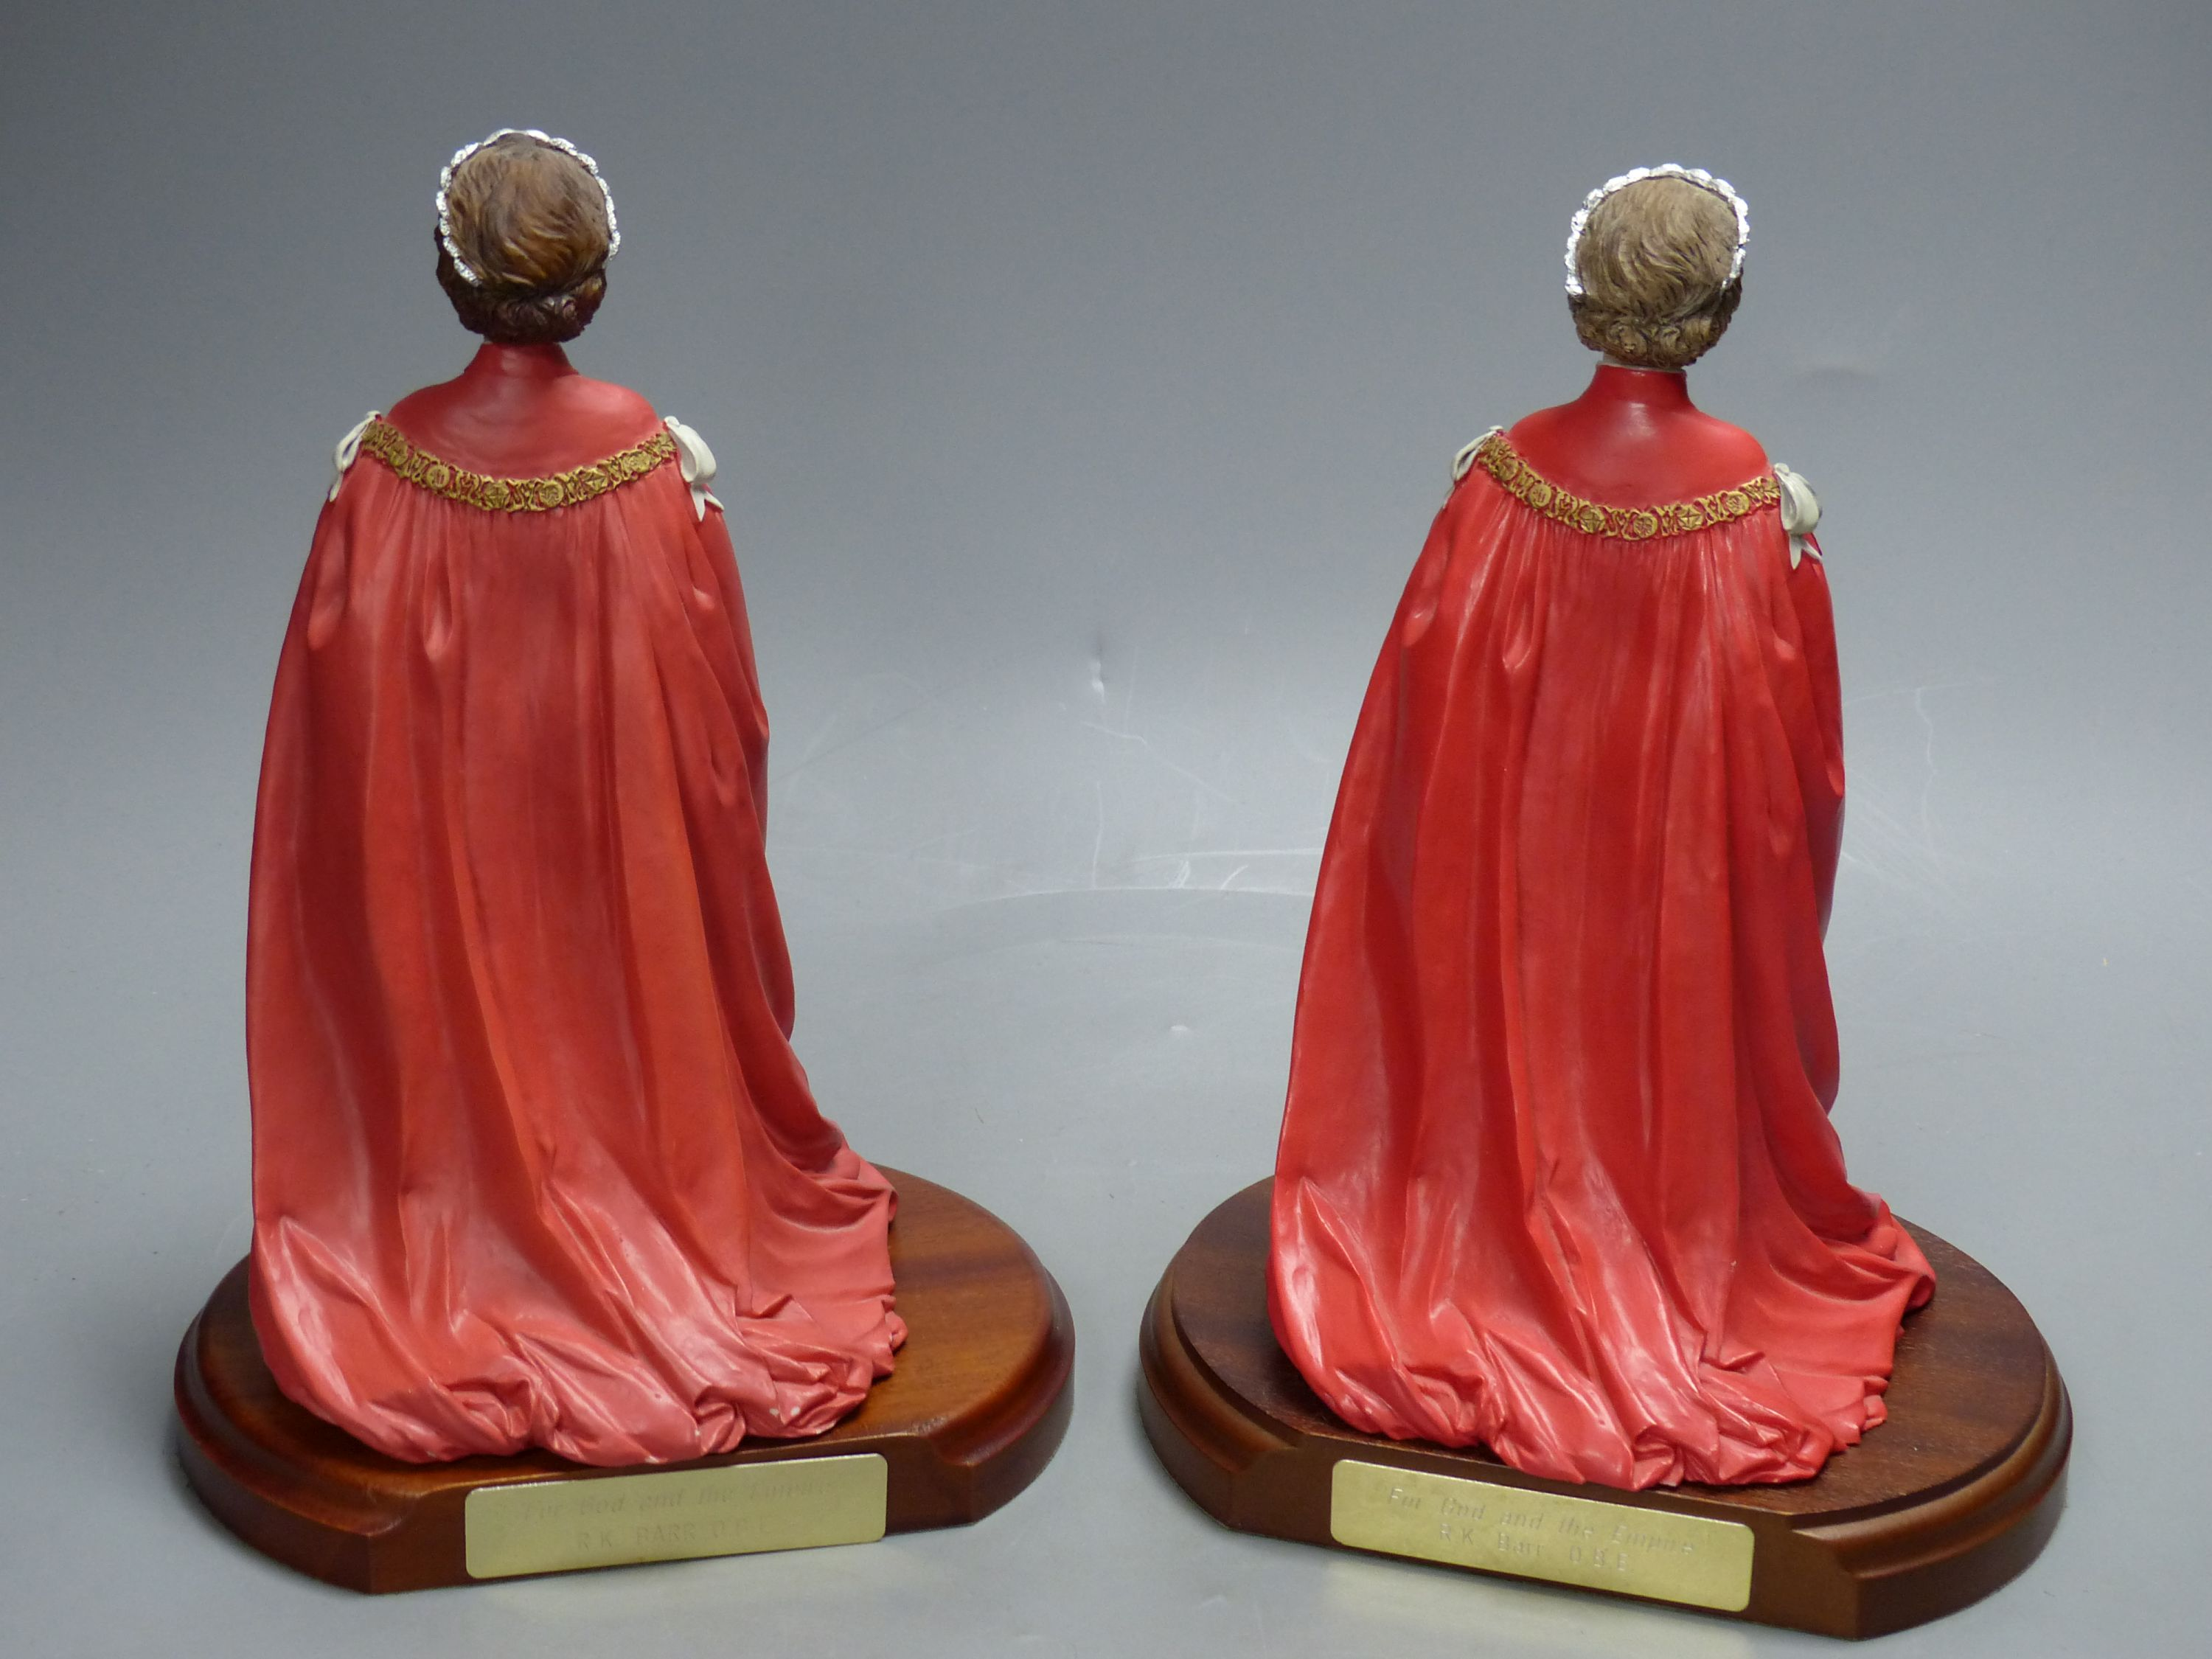 Two cold-cast porcelain figures of HM Queen Elizabeth II by Timothy Potts,commissioned for those - Image 5 of 5